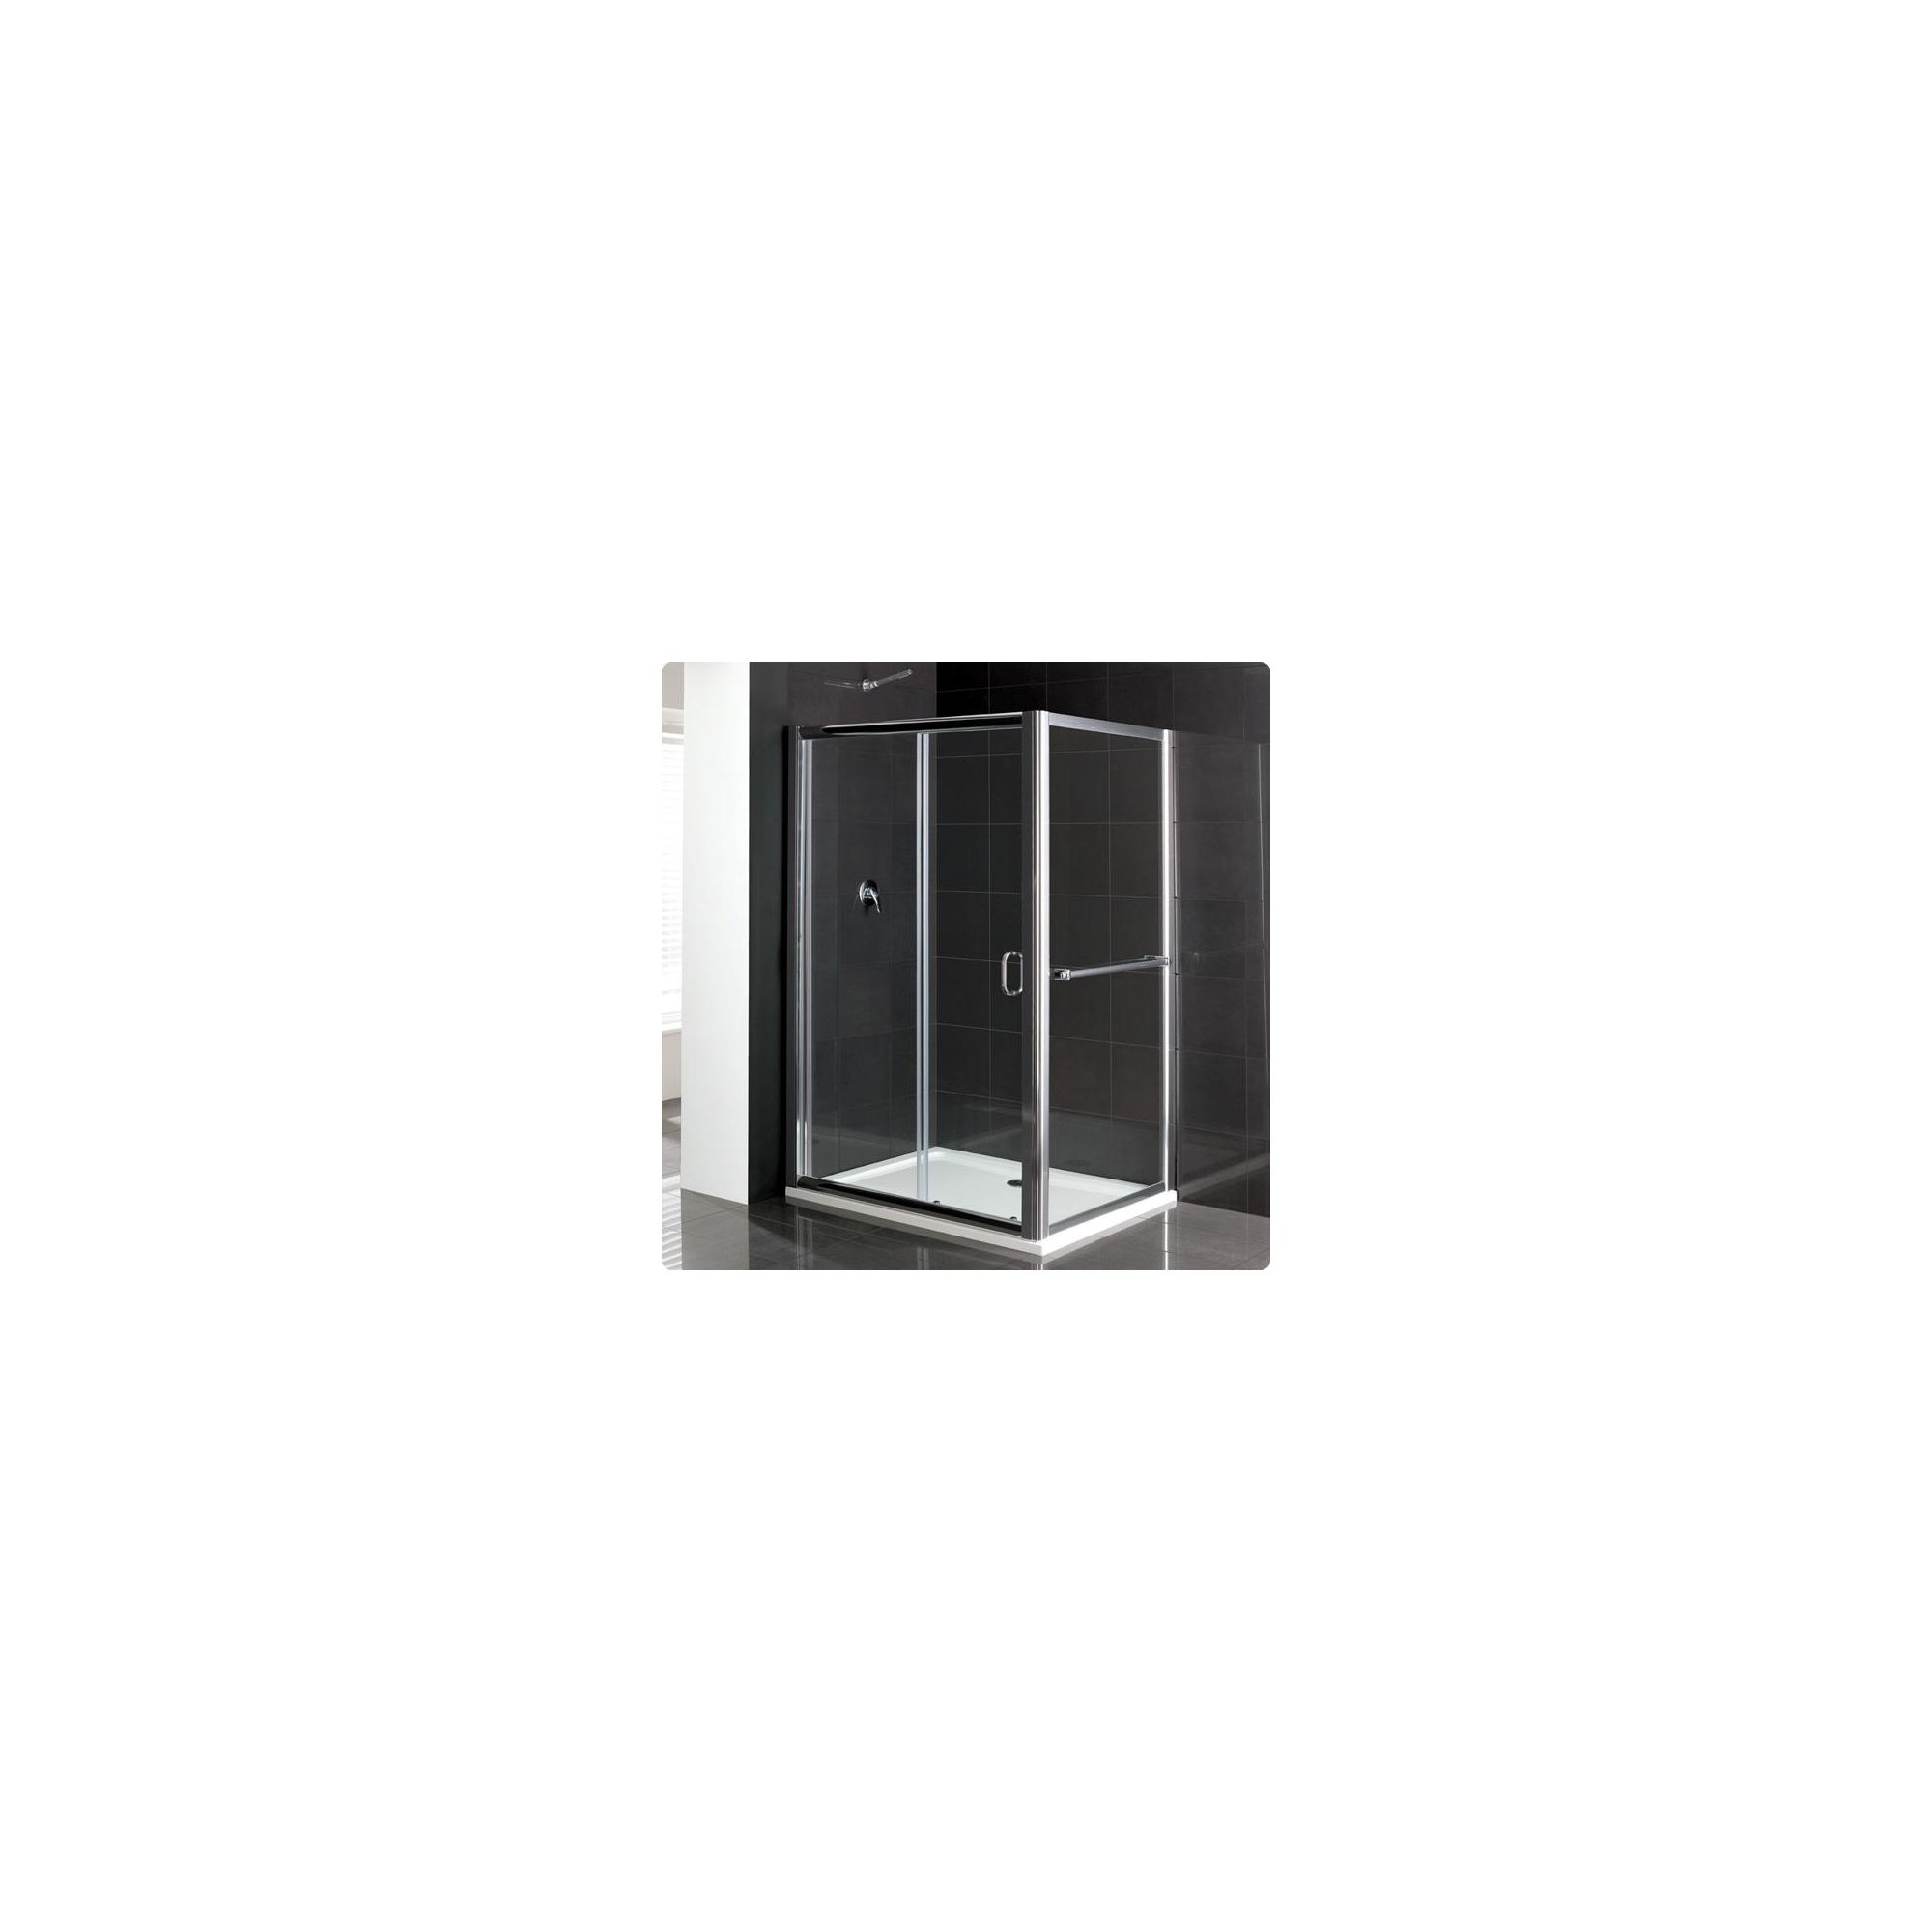 Duchy Elite Silver Sliding Door Shower Enclosure with Towel Rail, 1600mm x 800mm, Standard Tray, 6mm Glass at Tesco Direct